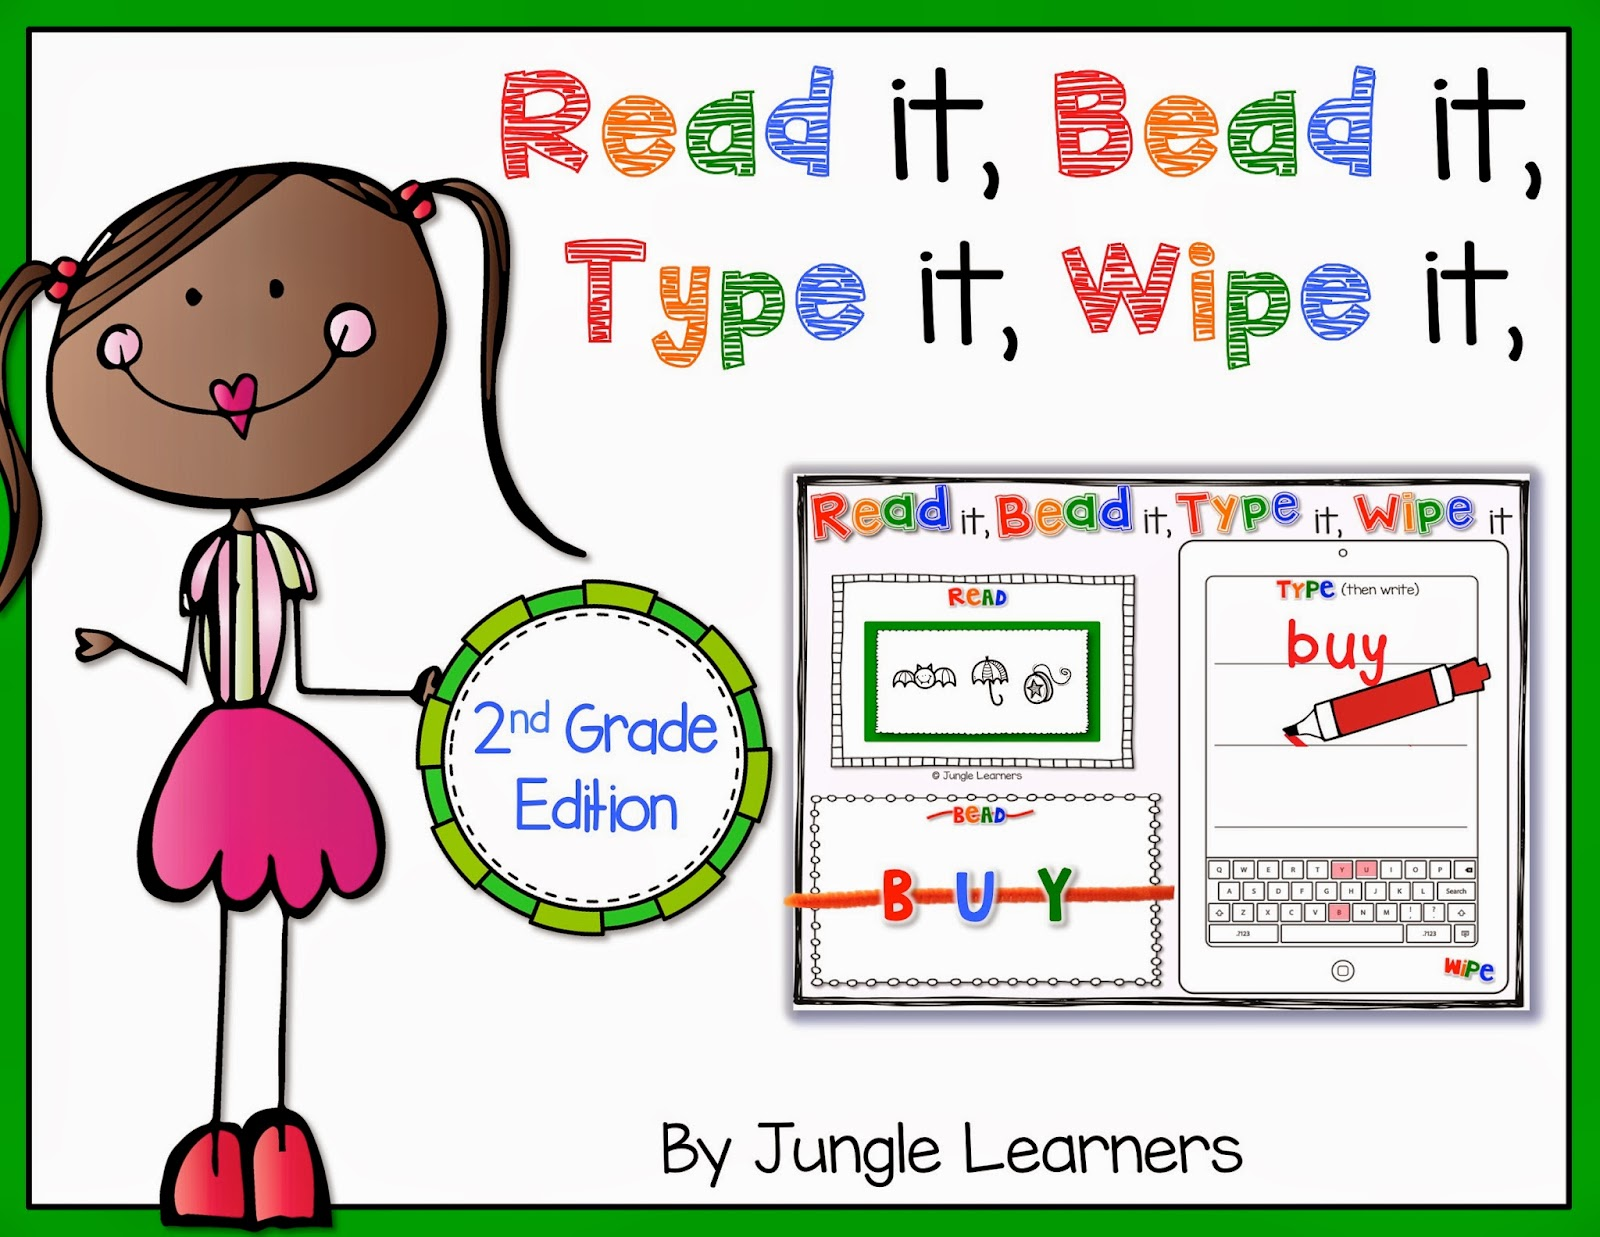 Read it, Bead it, Type it, Wipe it [2nd Grade Edition]